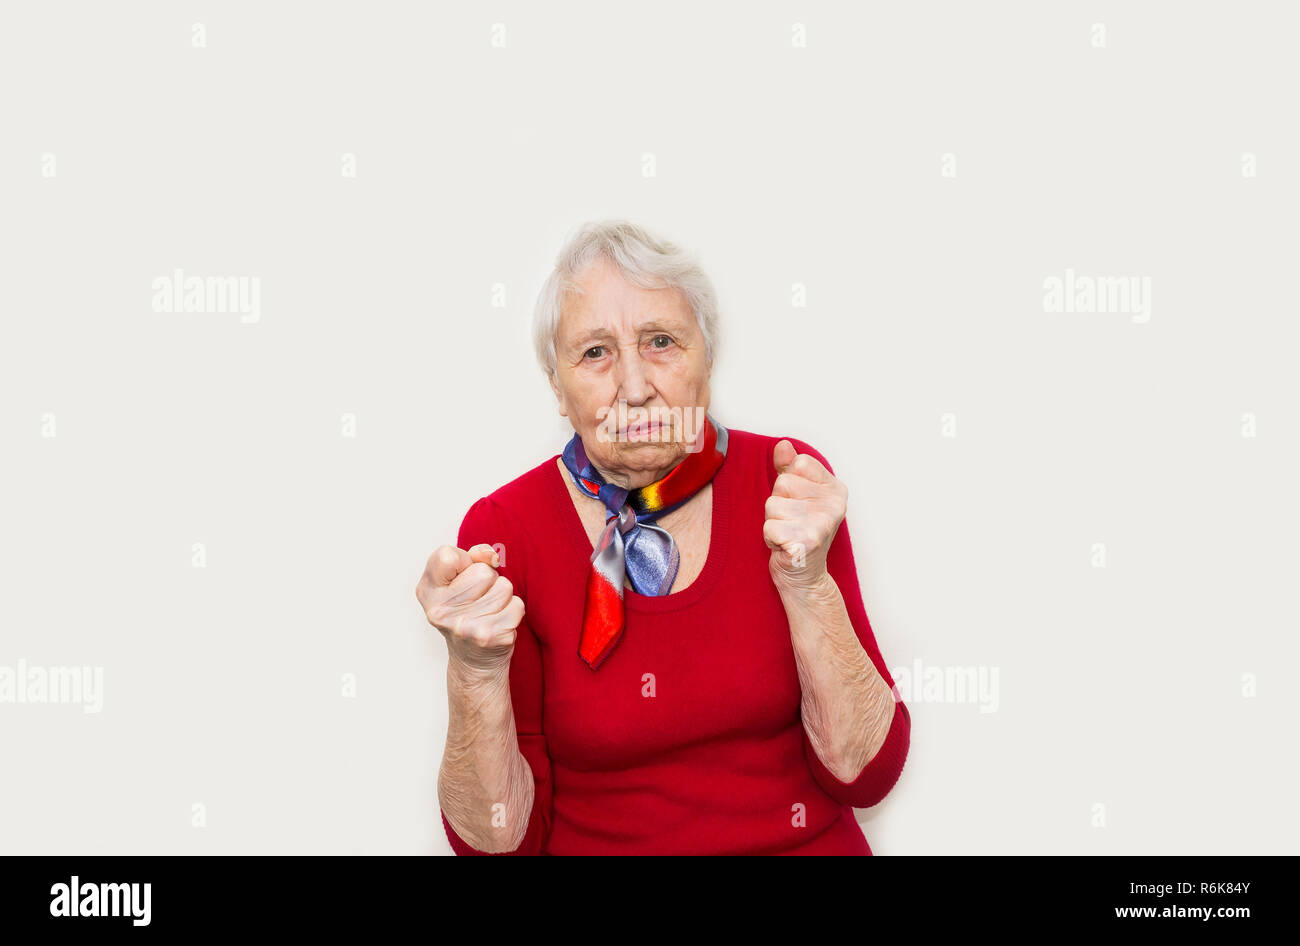 Angry old woman making fists sur fond blanc Banque D'Images